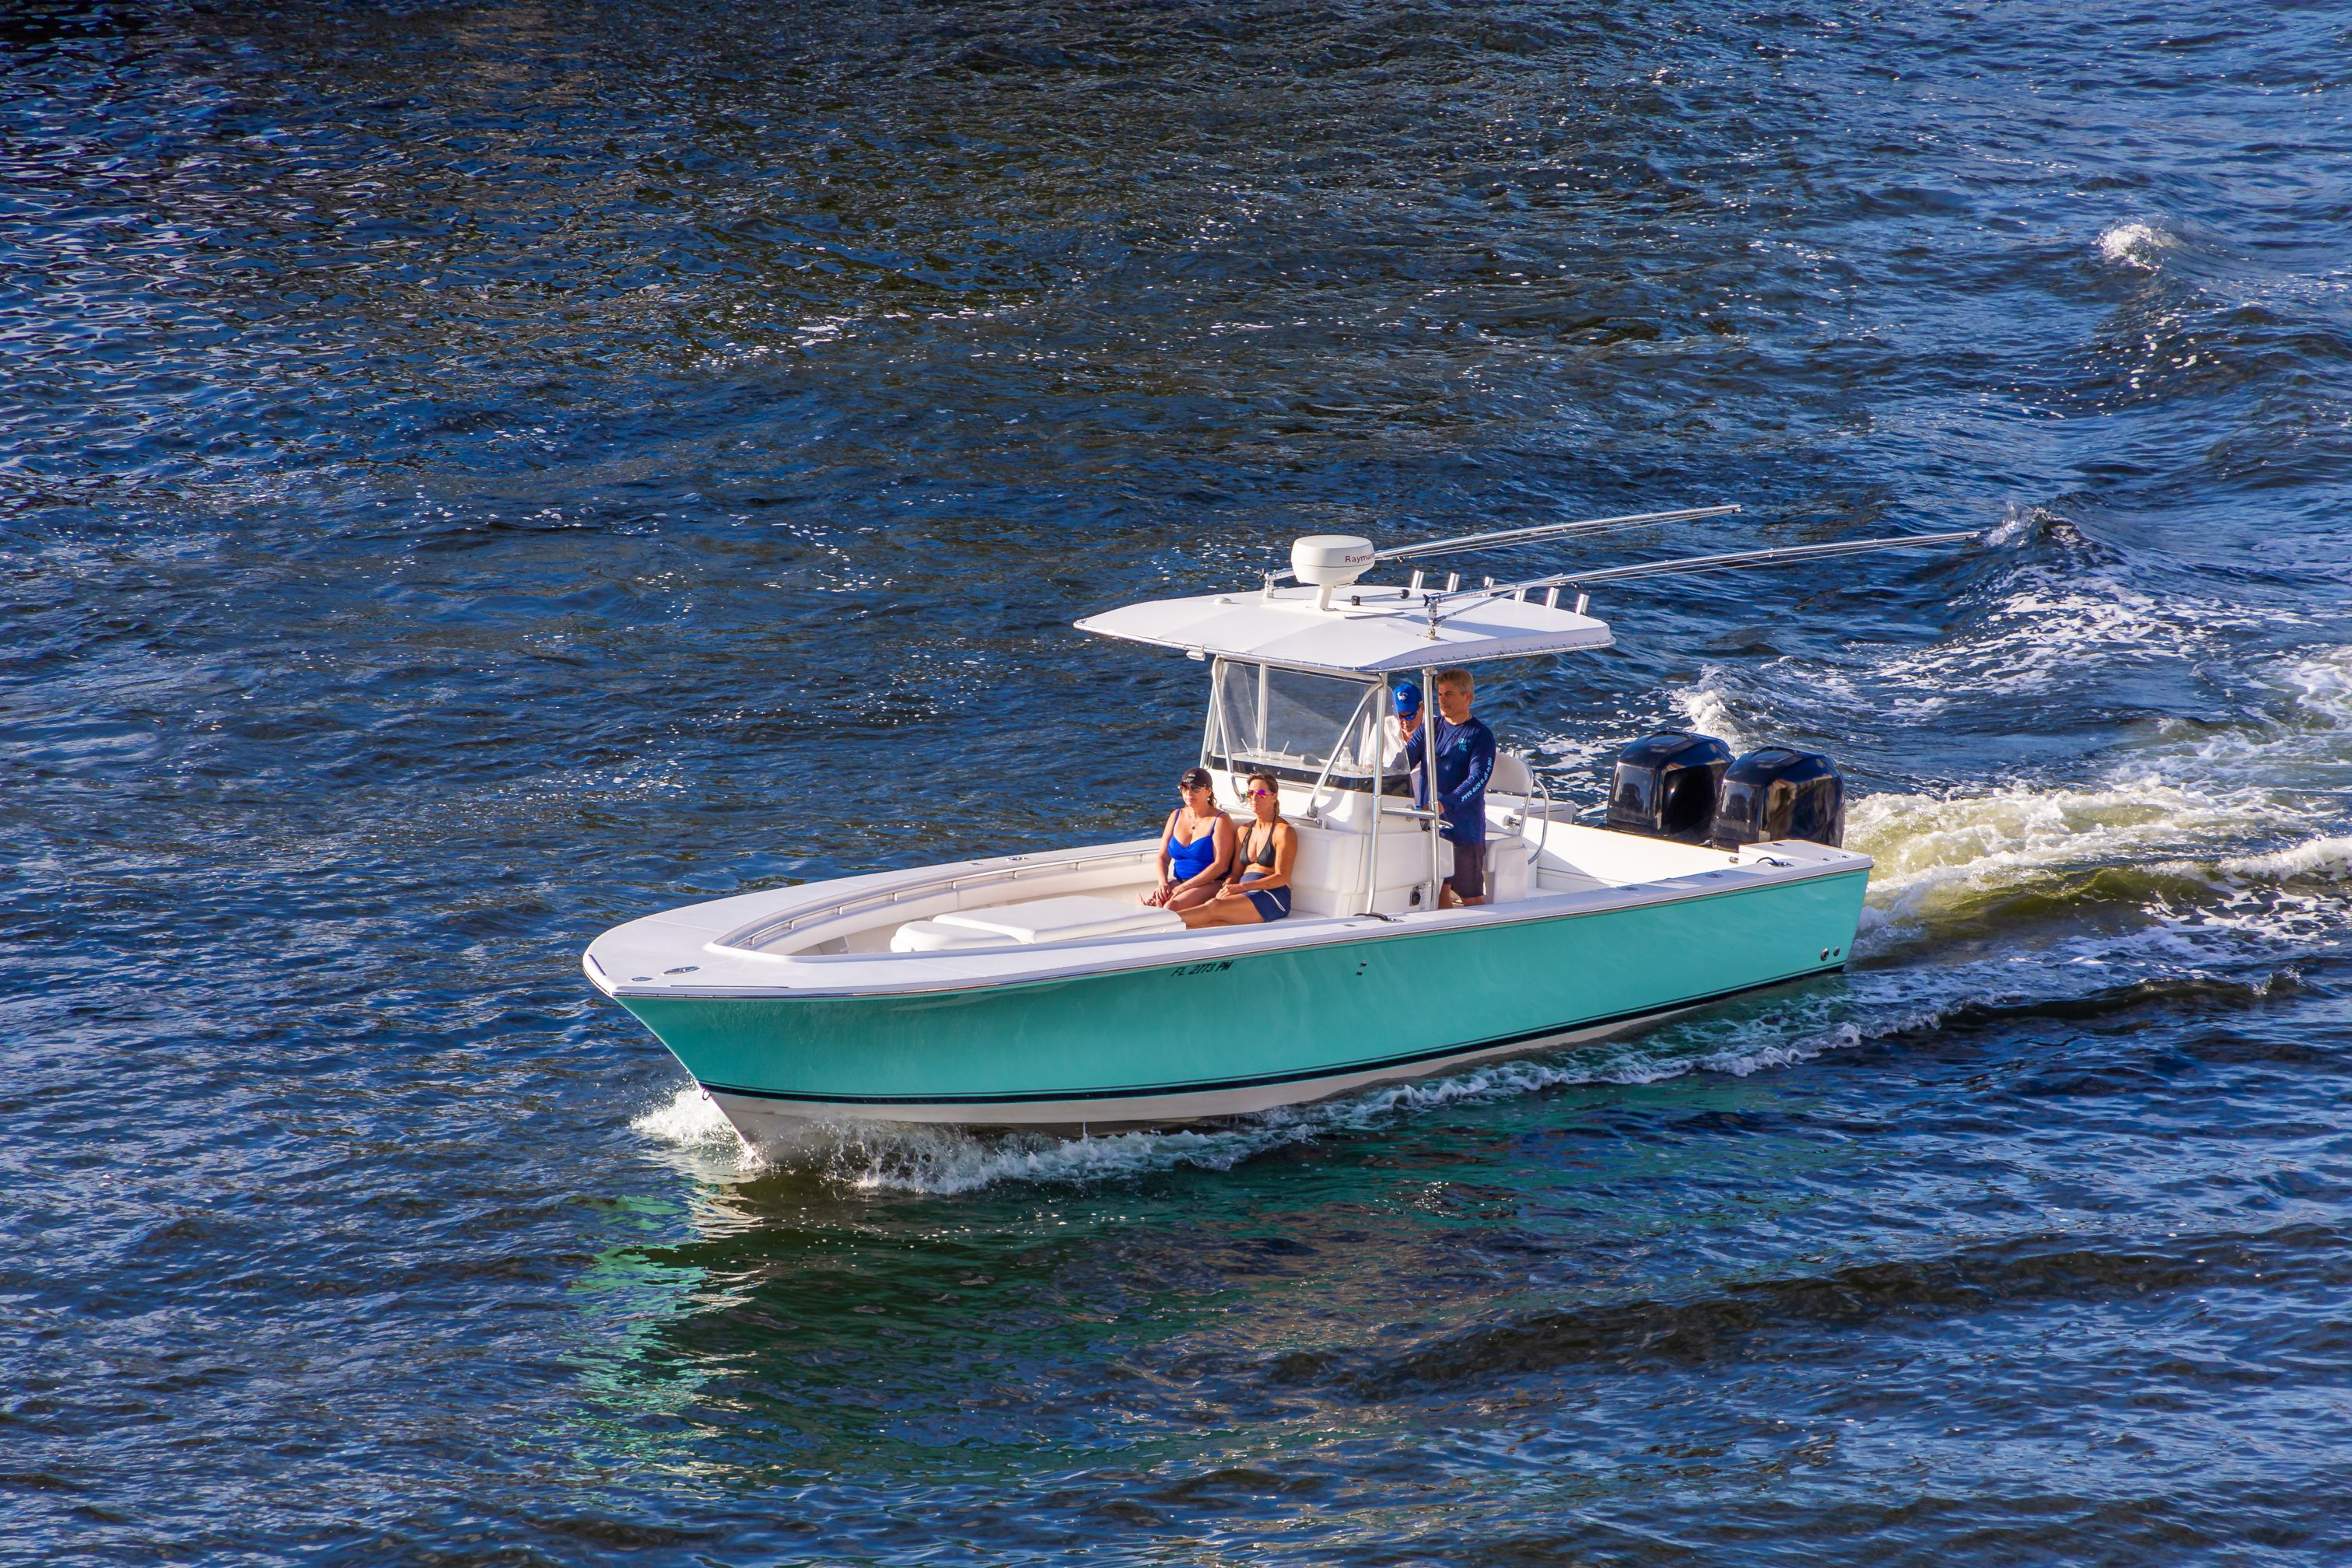 Learn About Boat Types And Their Uses